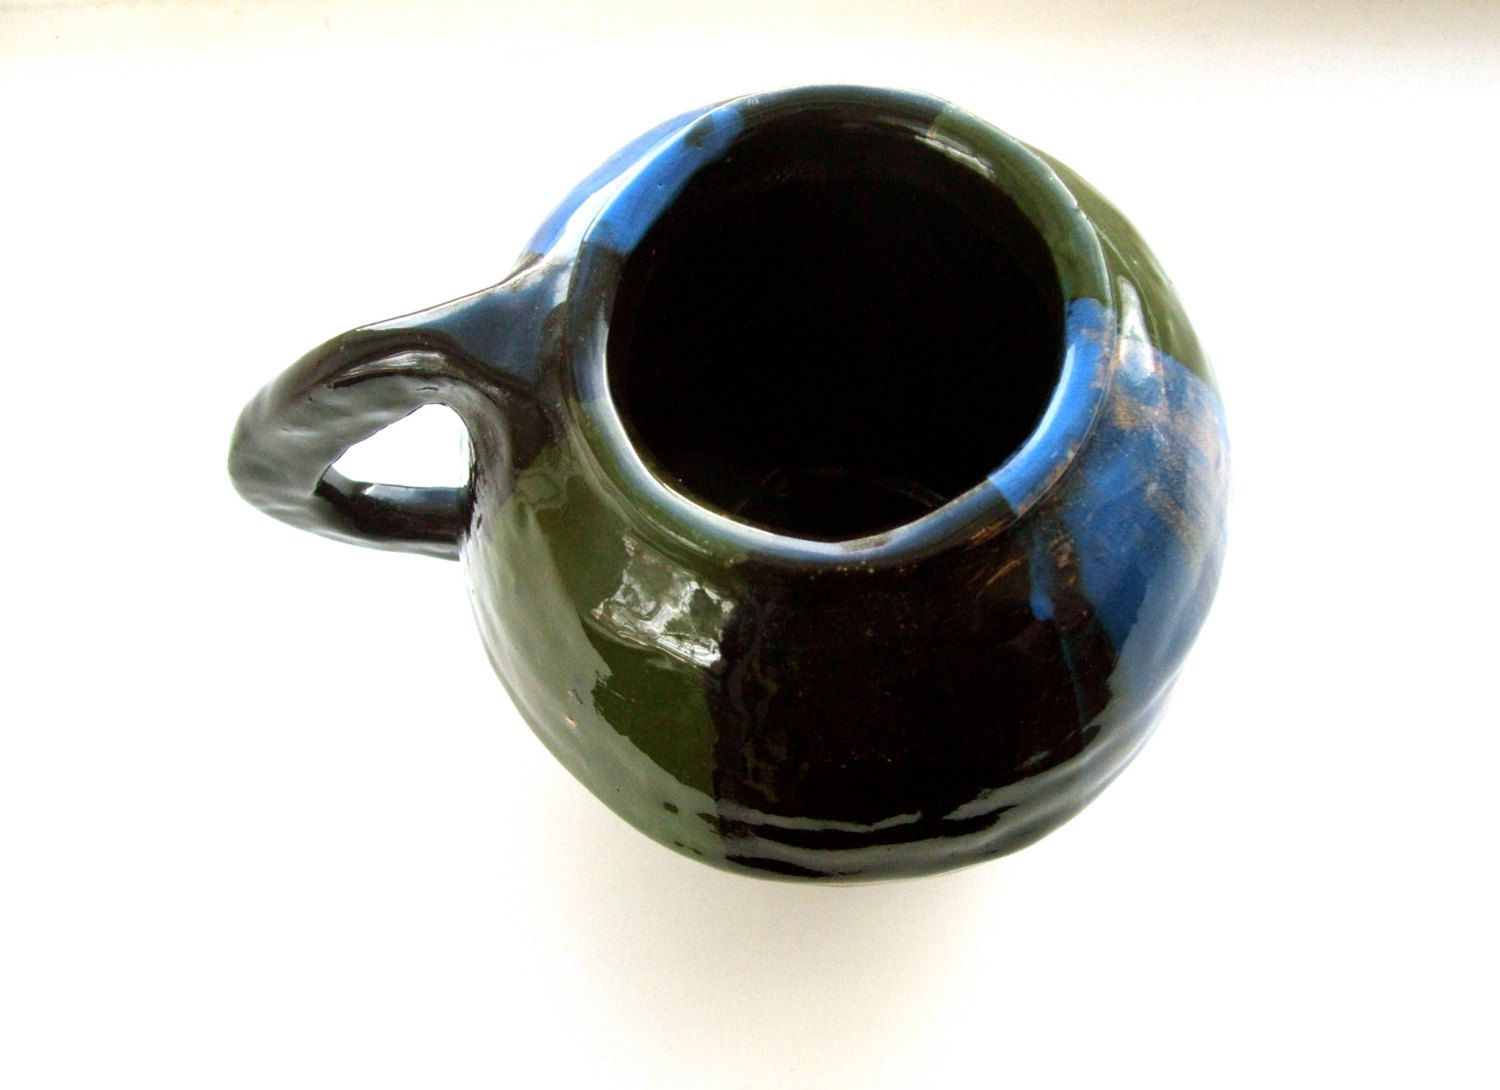 Handmade Vintage Heavy Duty Art Pottery Mug by lookonmytreasures on Etsy